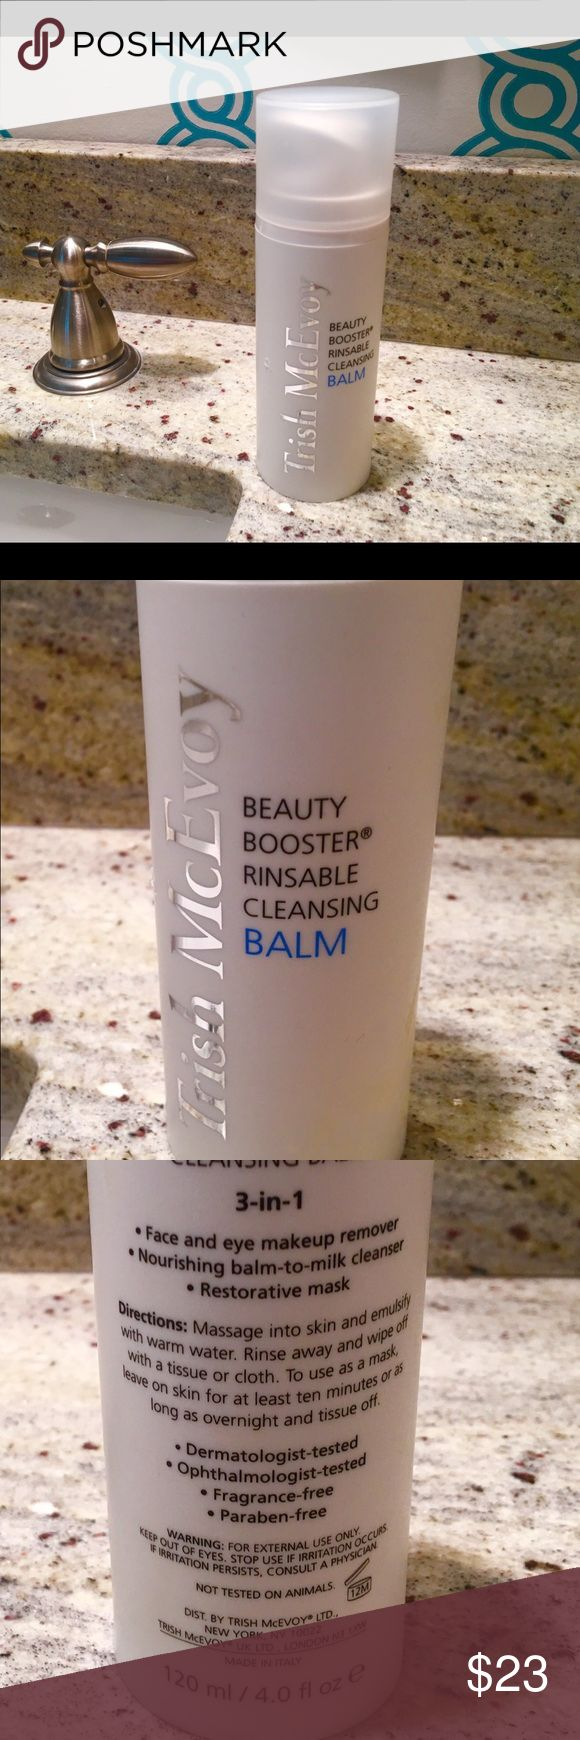 👍Disc Ship Trish McEvoy  3-in-1 Cleanse Balm Brand new, never been opened or used. Luxuriate in Trish McEvoy's Beauty Booster Rinsable Cleansing Balm. It glides on, nourishes skin, melts away make up and dissolves the debris of the day. Emulsified with warm water, what begins with a balm transforms into weightless milk and rinses away without a trace of residue. Skin is left feeling clean & supple with a cushiony finish. The pure vitamin rich formula can be used as a pampering mask. Non…